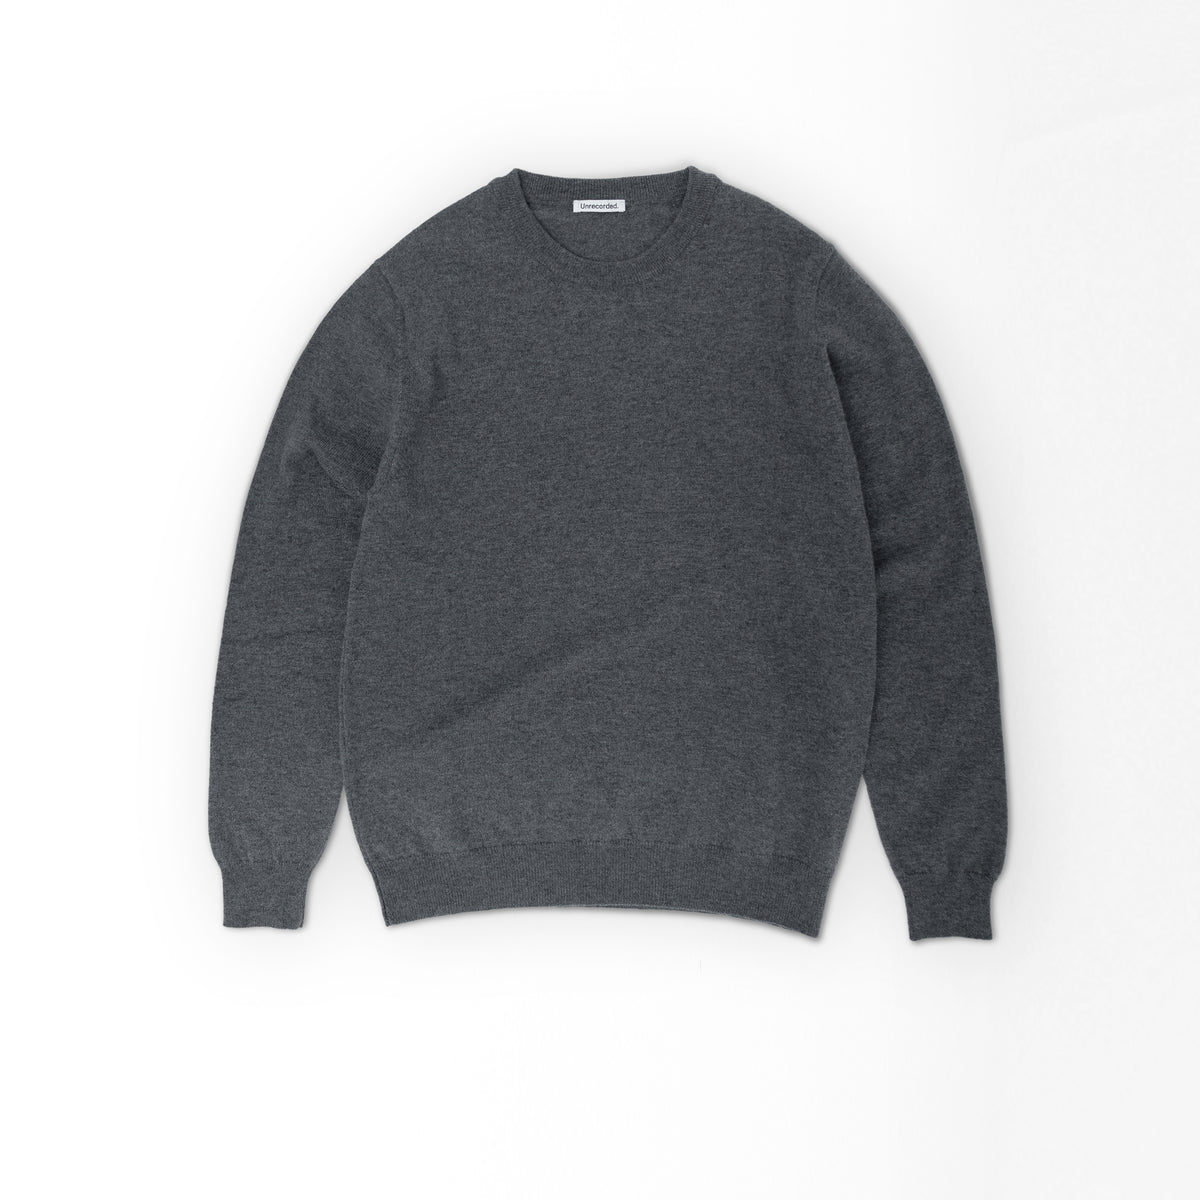 Lambswool Sweater Dark Grey - Unrecorded